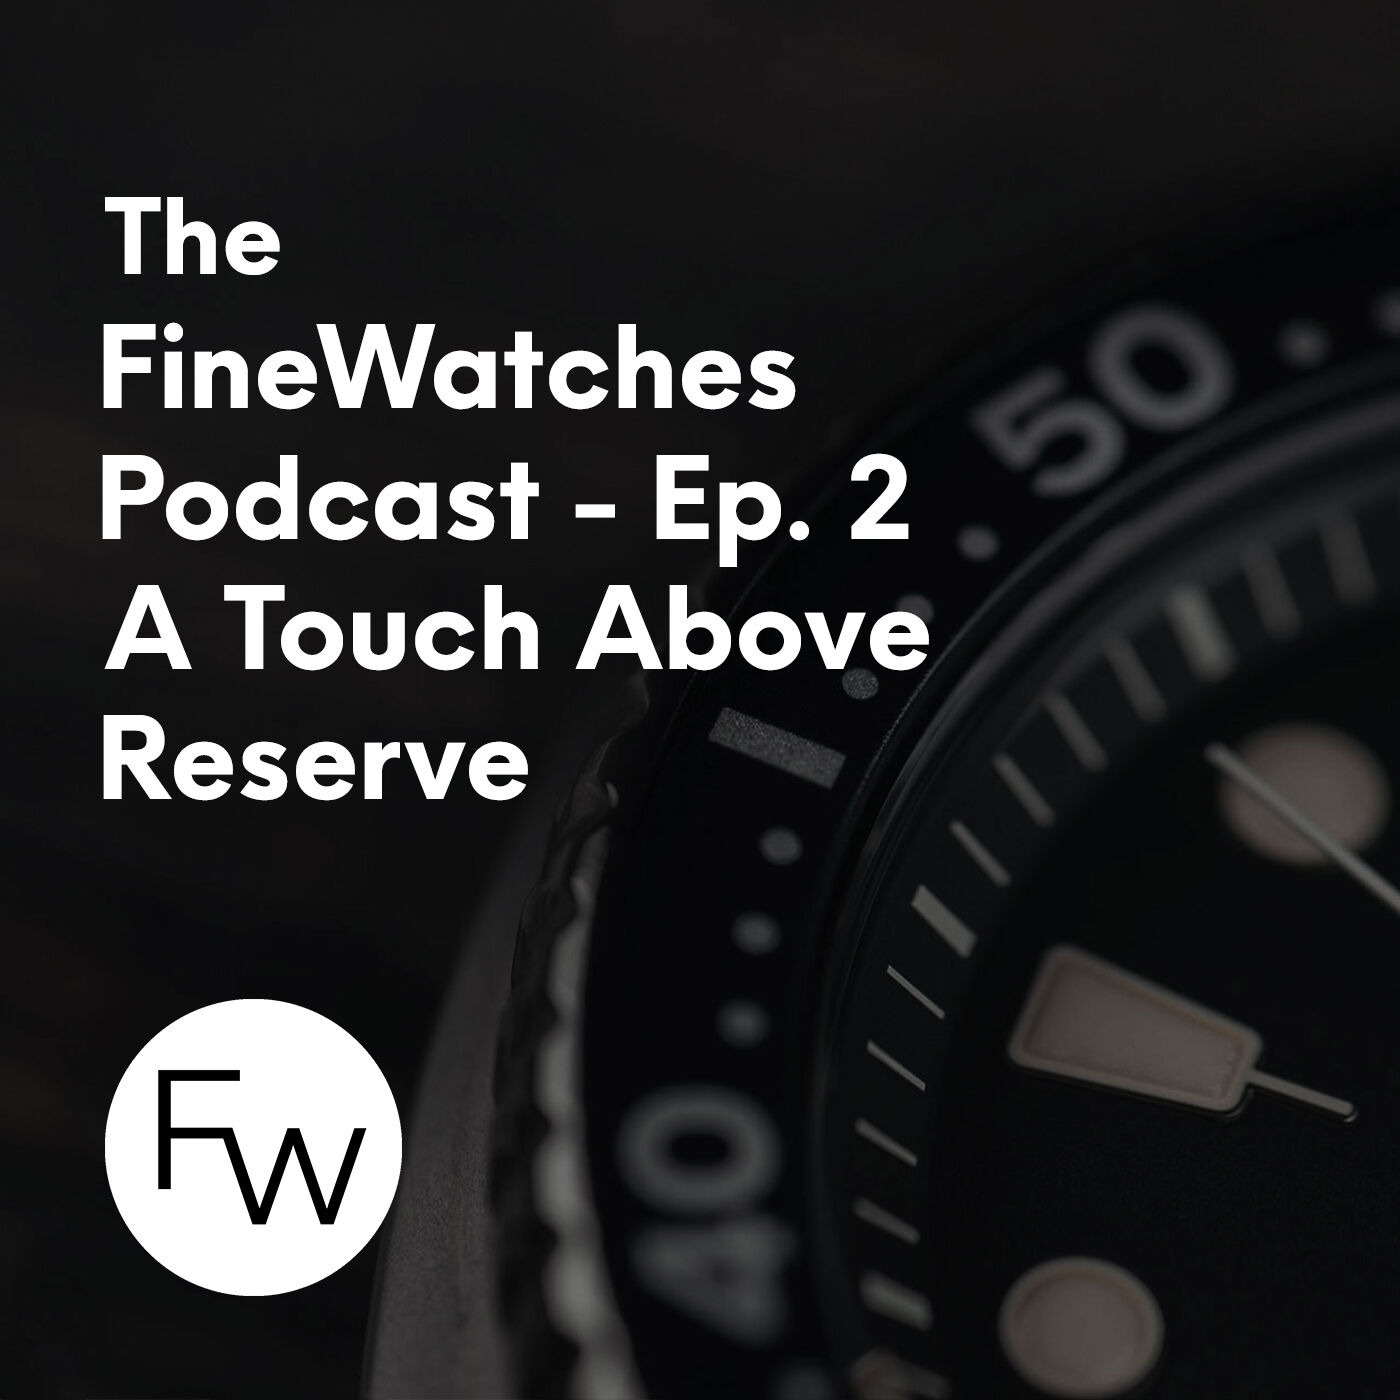 A Touch Above Reserve - Vintage Watches with Eric Wind.